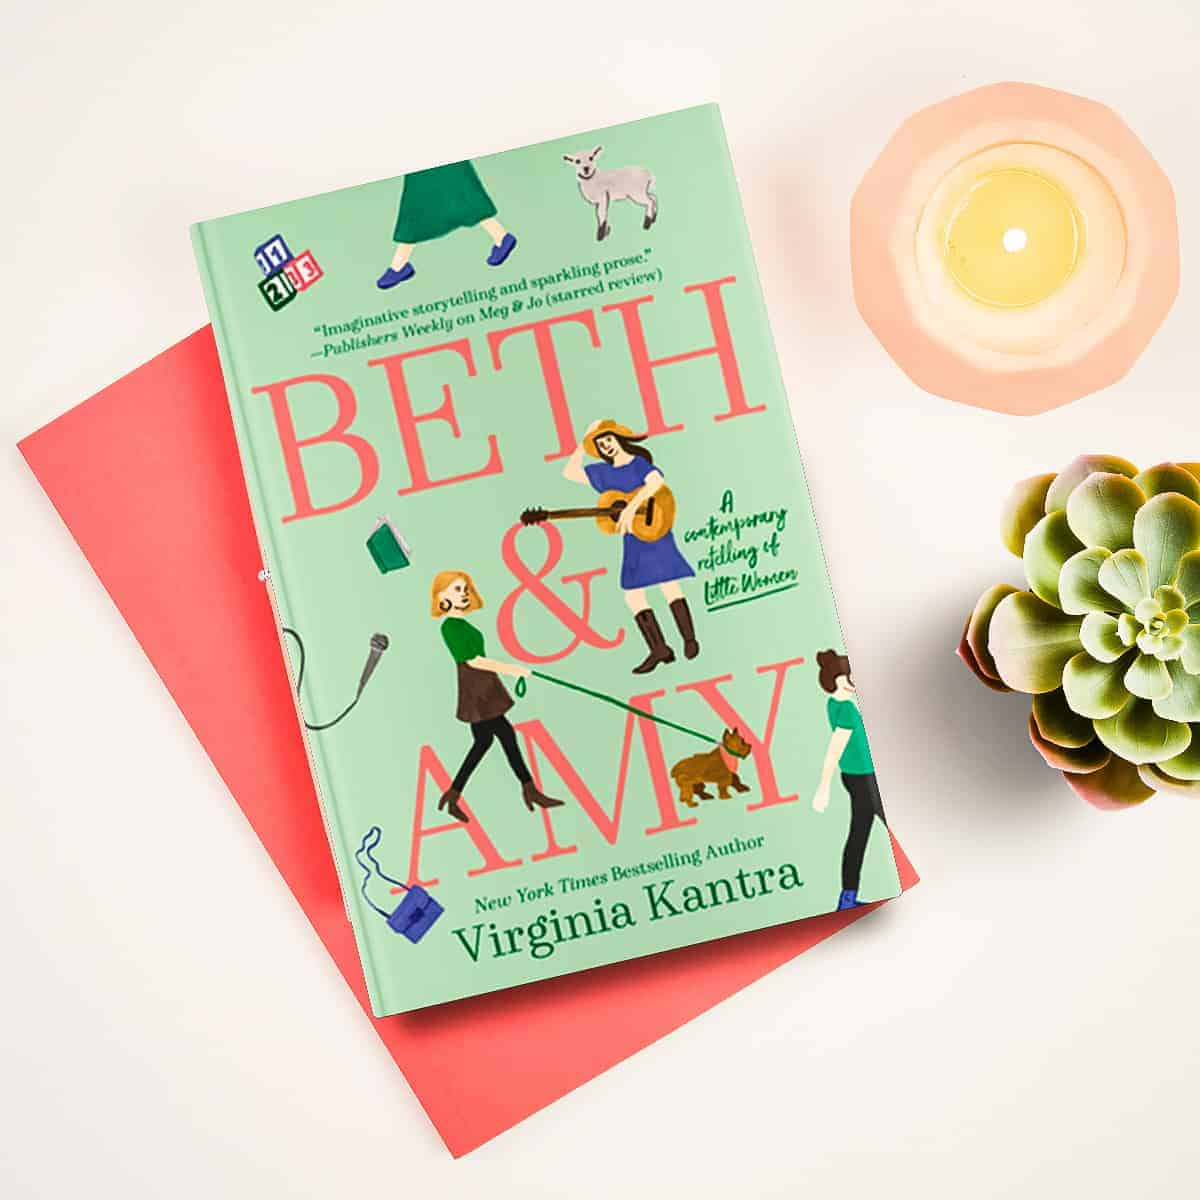 Enjoy this excerpt from Beth and Amy by Virginia Kantra, the second book in the March Sisters series, is a modern retelling of Little Women and the follow-up story to Meg and Jo!